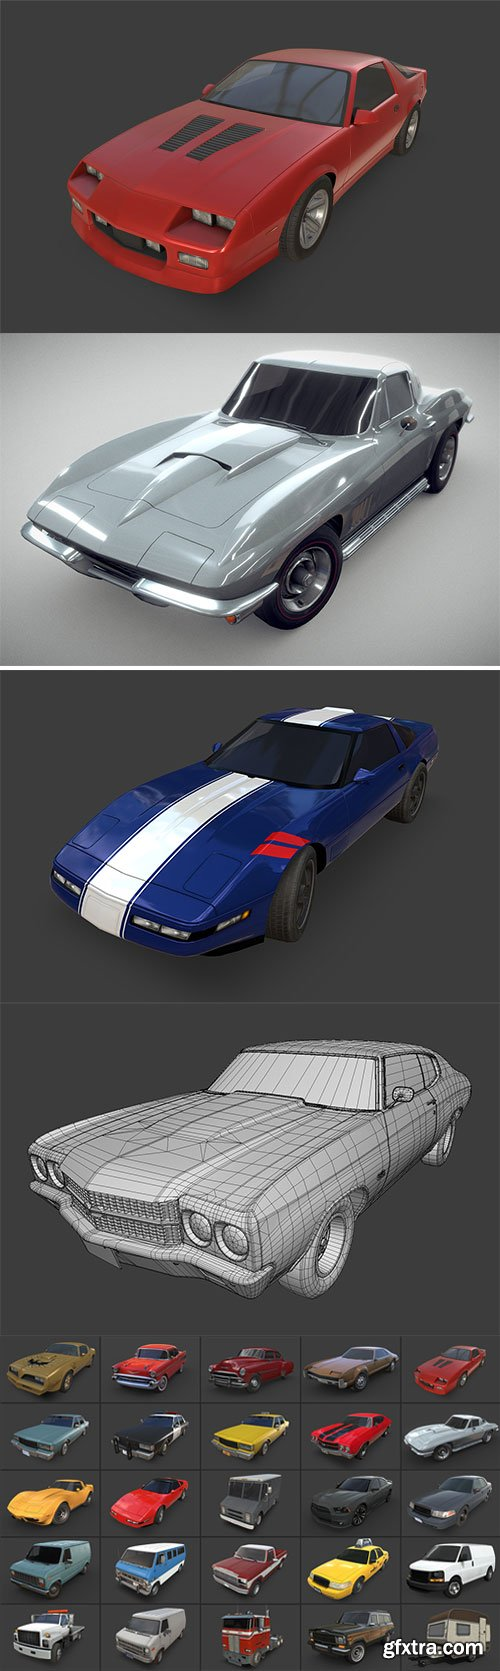 Cubebrush - American Cars Ultimate Collection - 645$